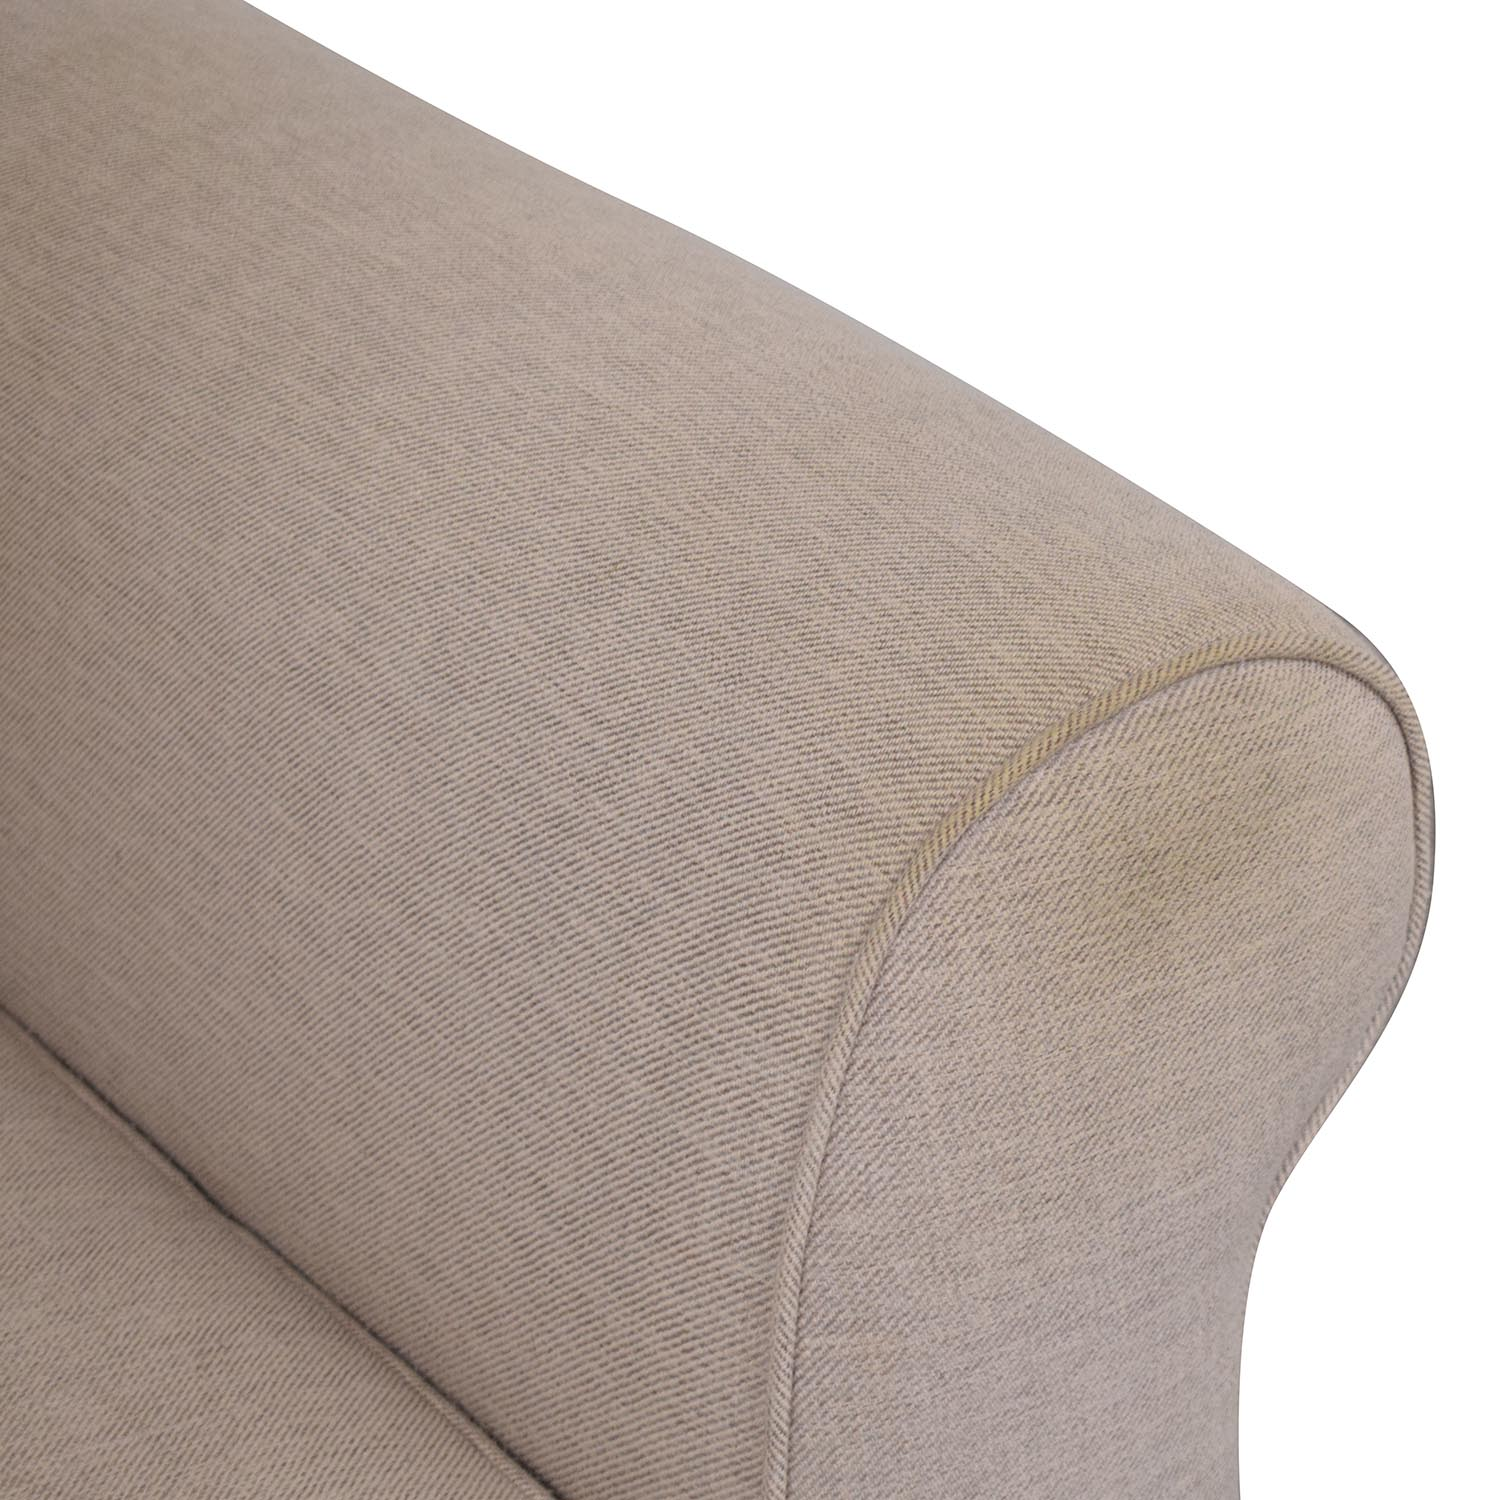 Pottery Barn Pottery Barn Comfort Roll Arm Upholstered Sofa for sale